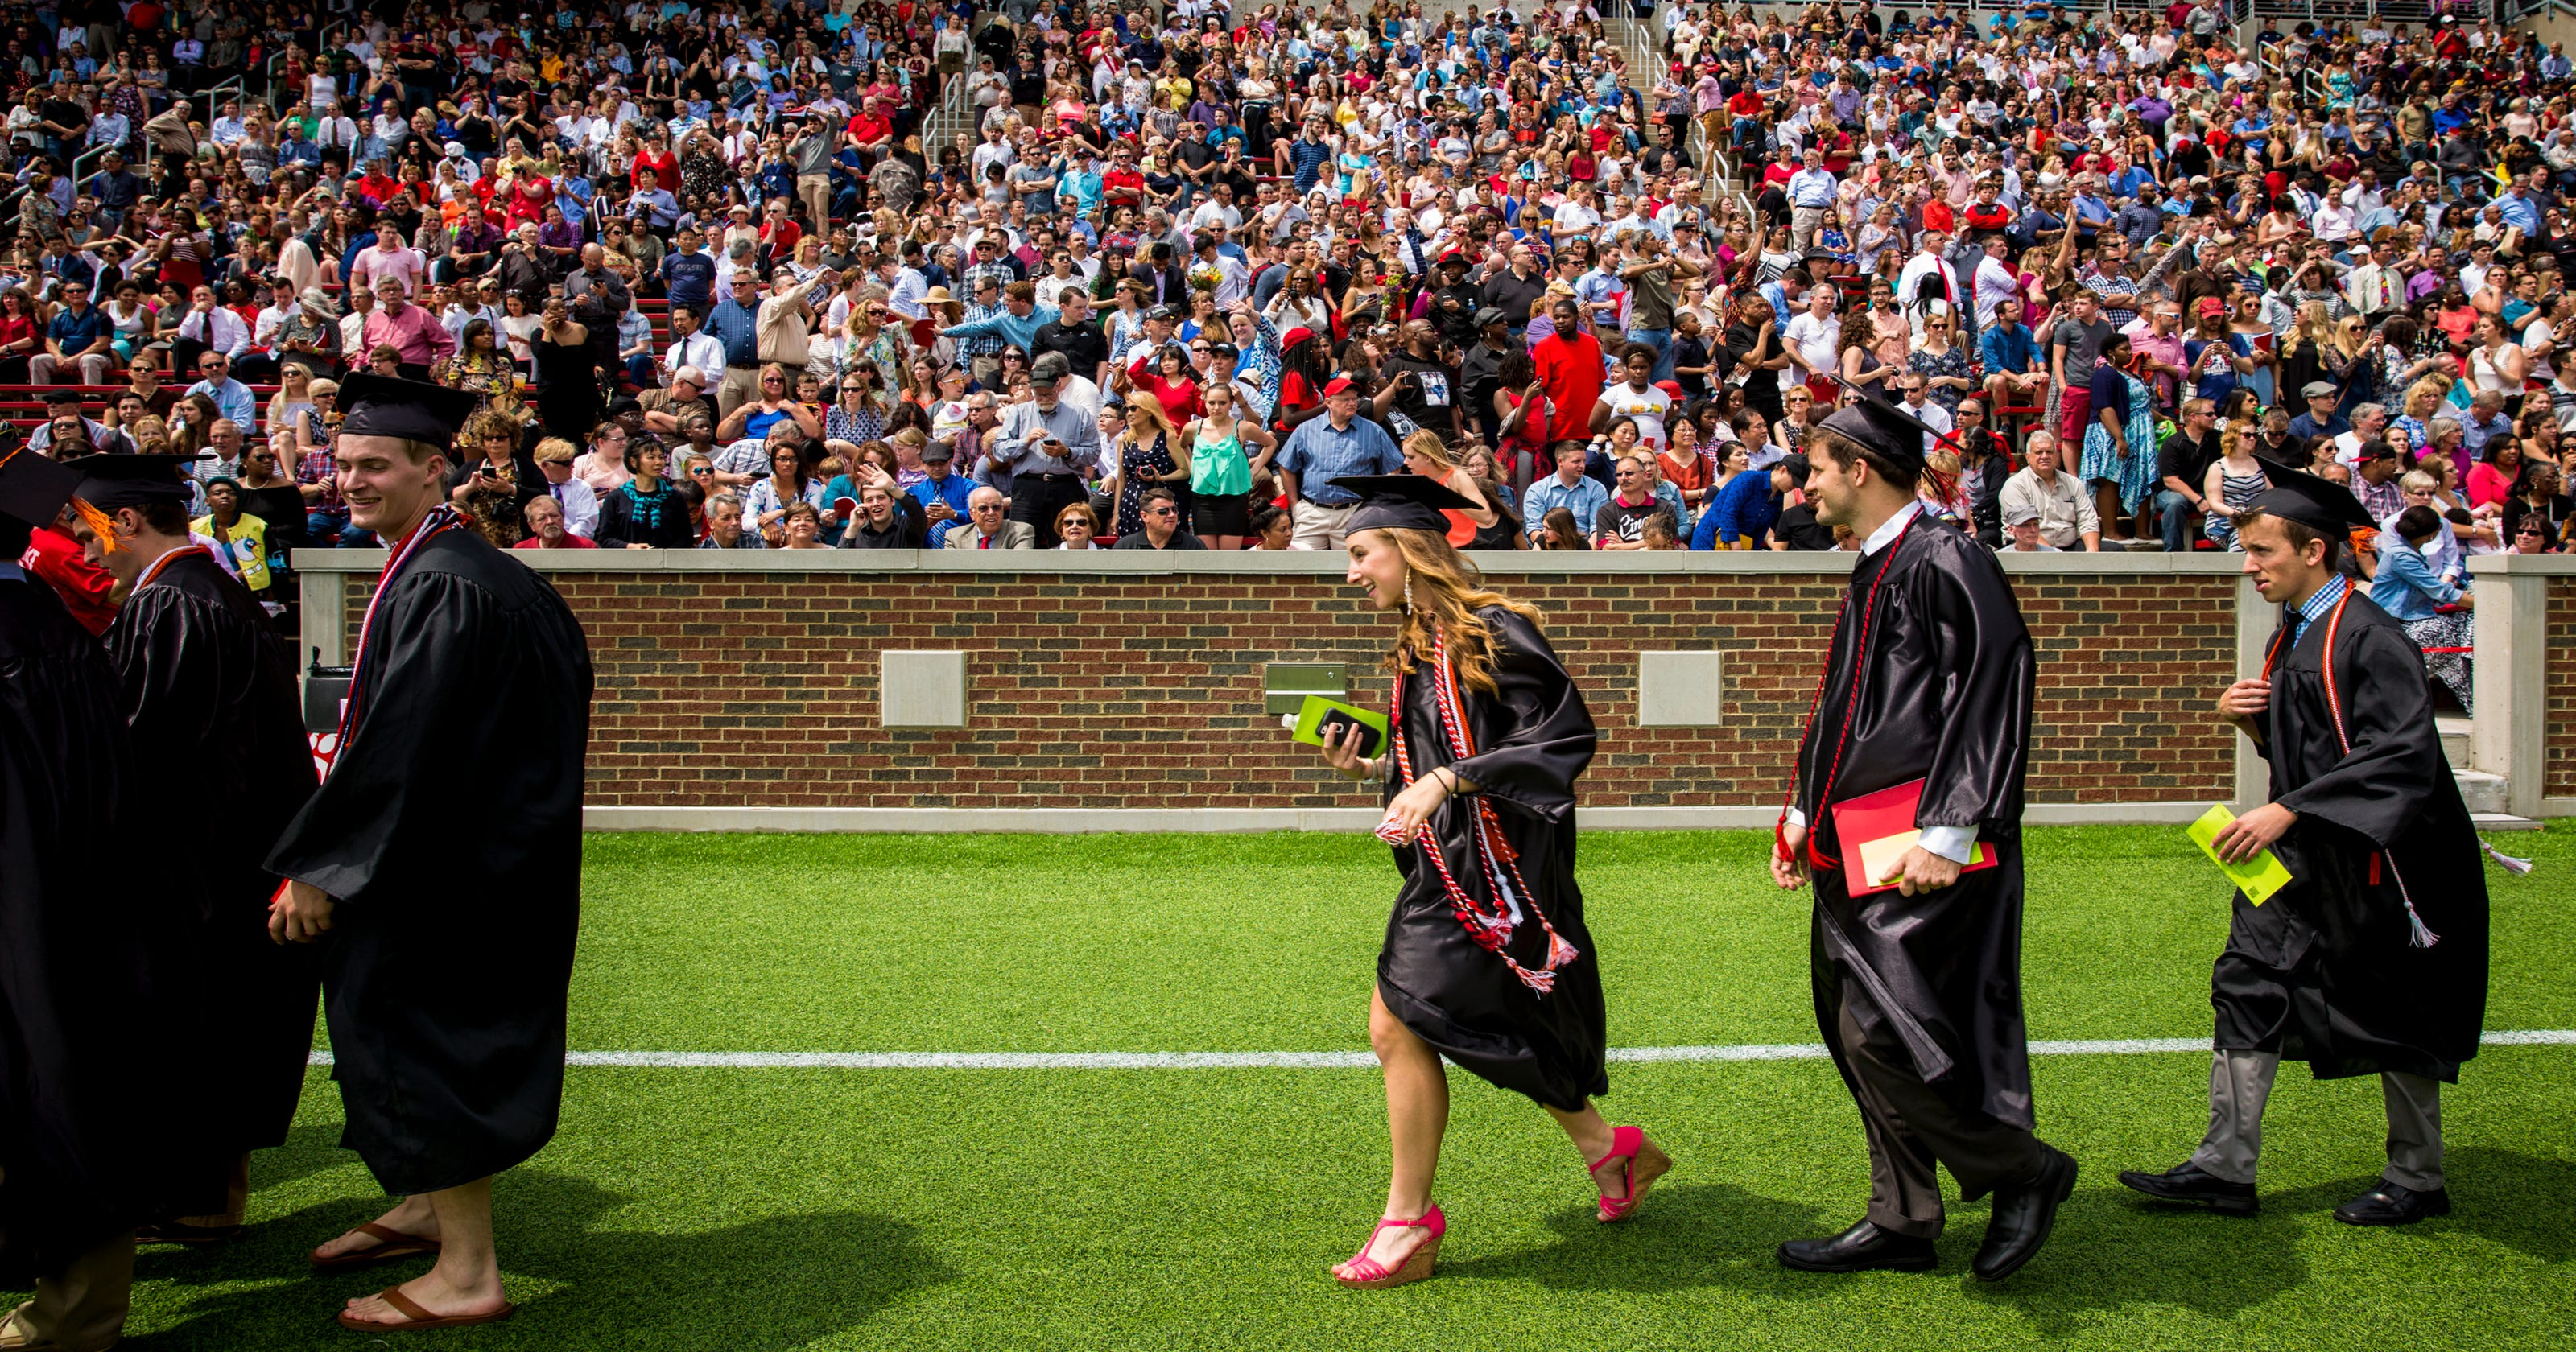 Uc Clermont Campus Map.Graduation What You Need To Know For Commencement At Local Universities